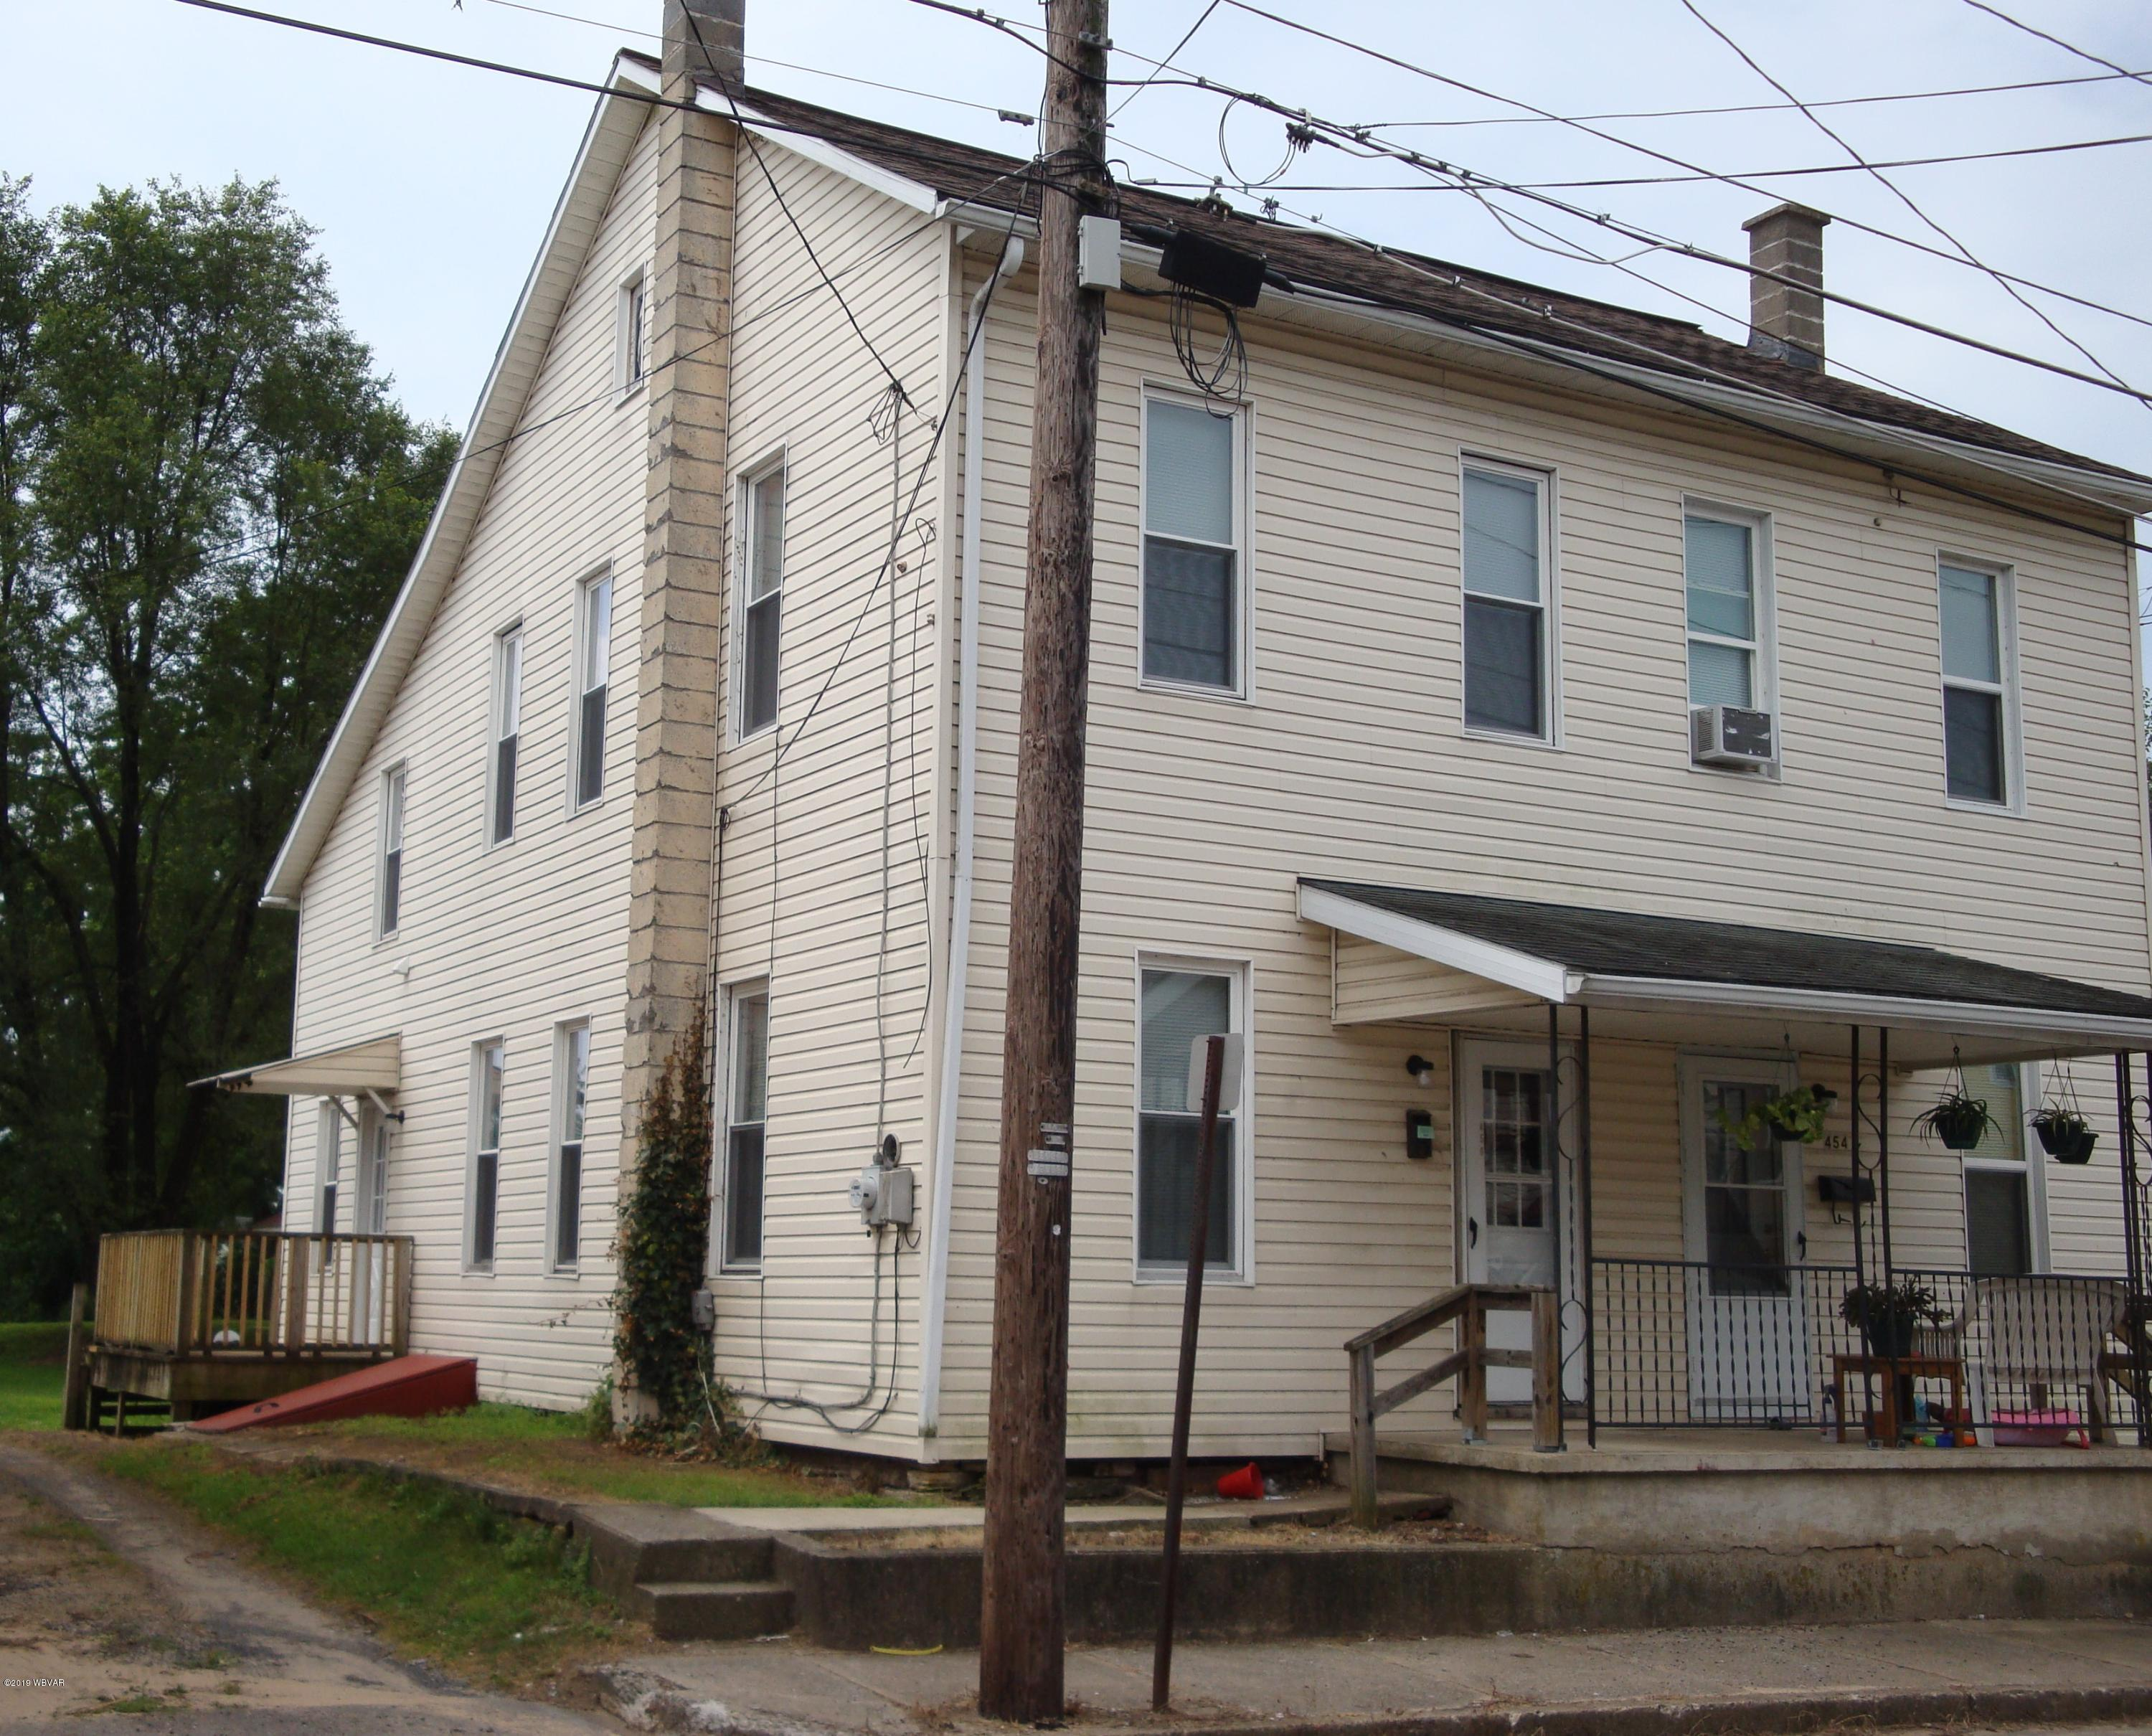 456 COLUMBIA AVENUE,Milton,PA 17847,2 Bedrooms Bedrooms,1 BathroomBathrooms,Resid-lease/rental,COLUMBIA,WB-87910